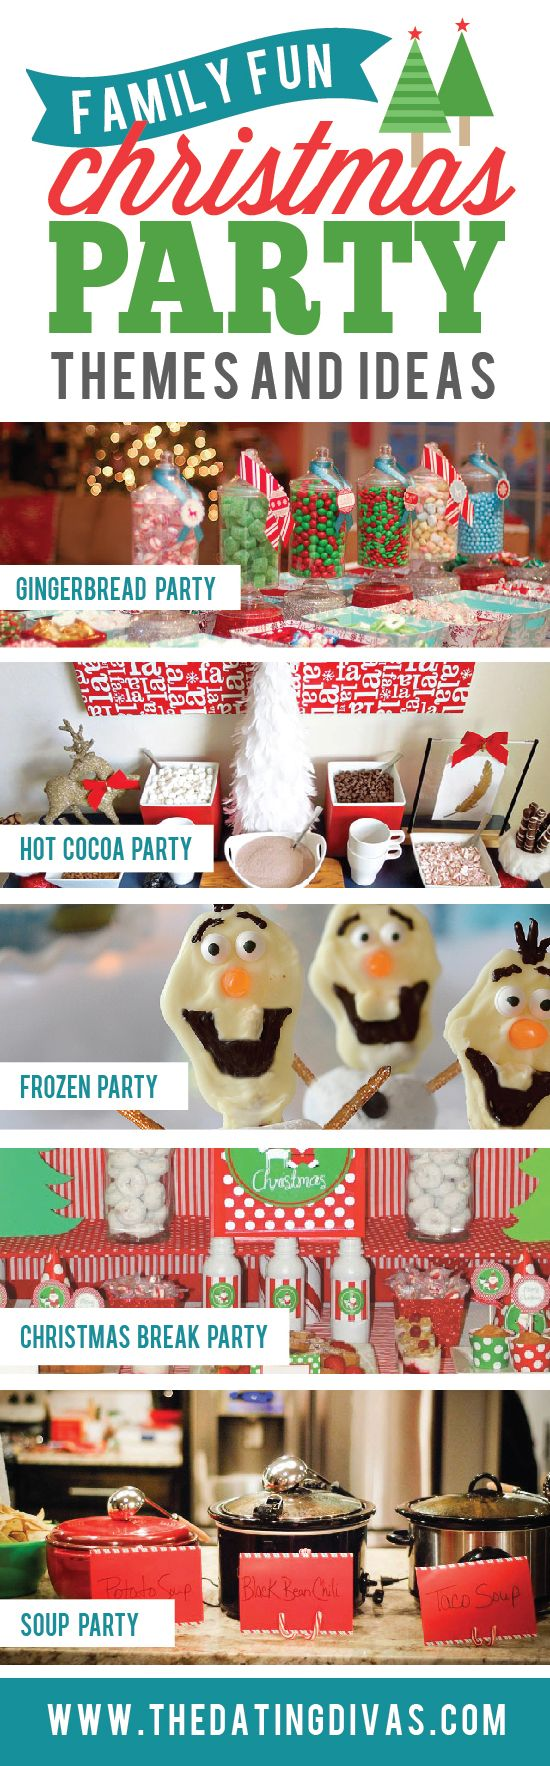 fun family christmas party themes merry christmas and happy new